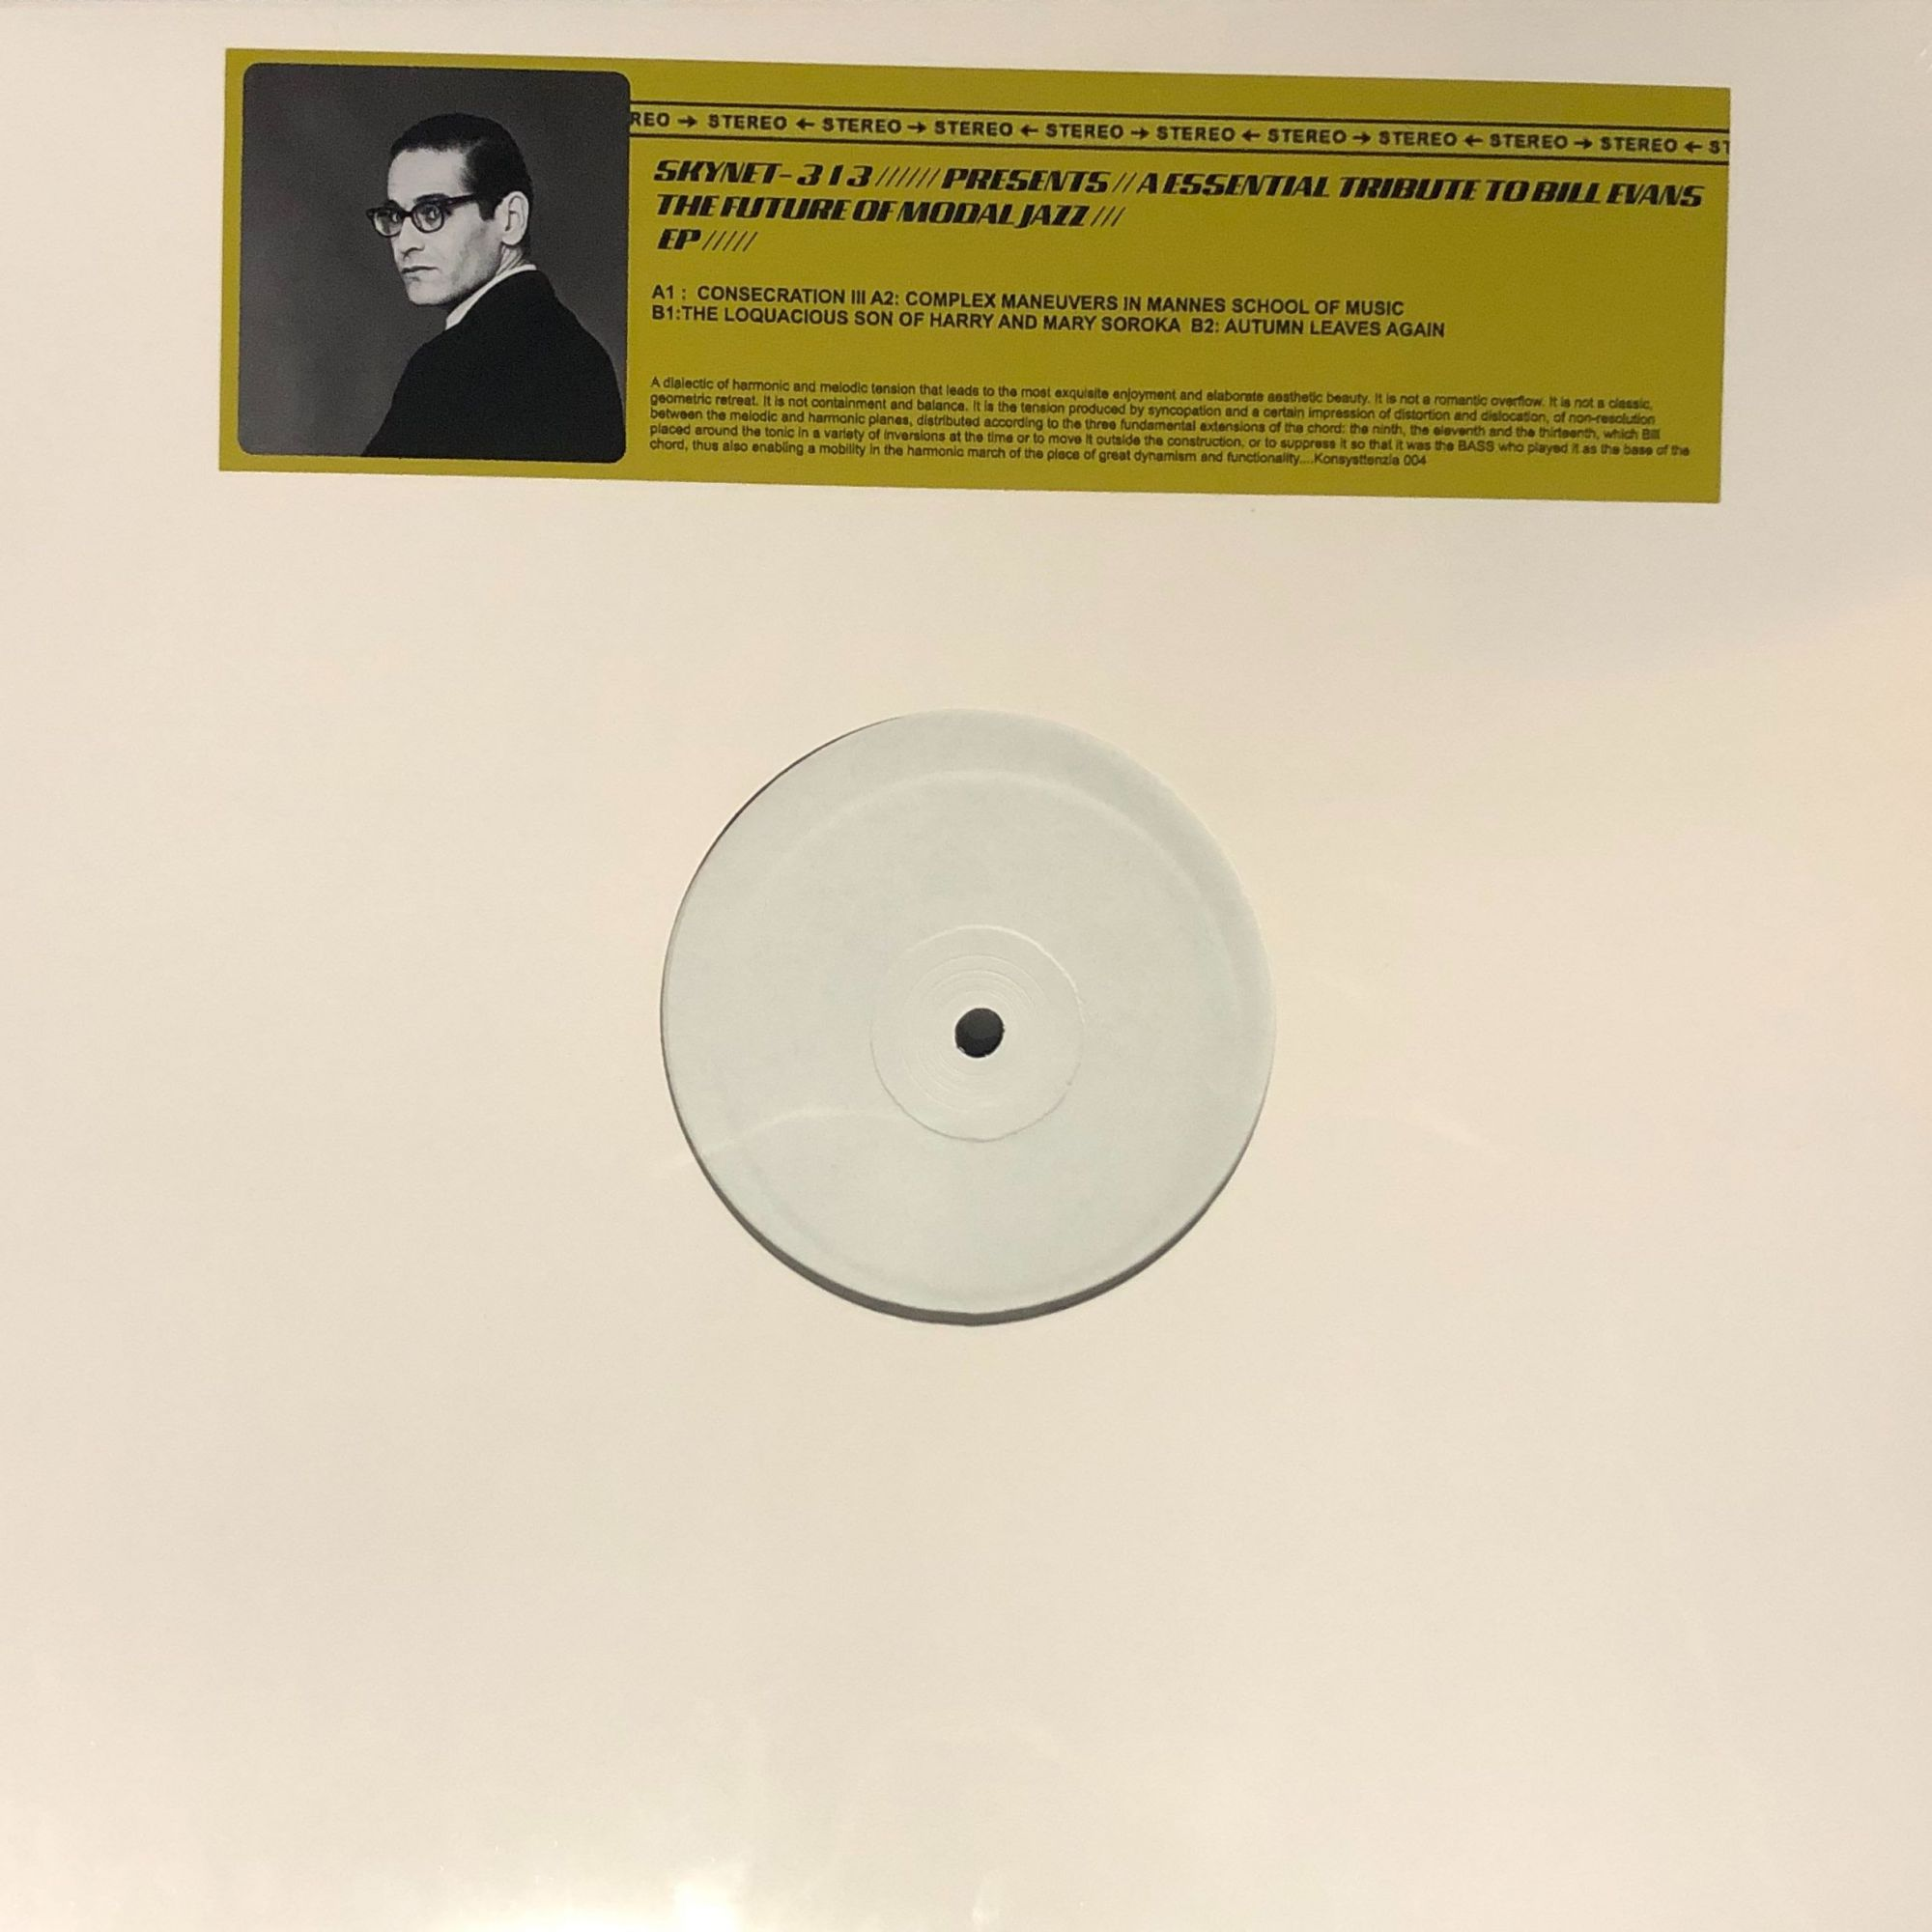 Skynet-313 - A Essential Tribute To Bill Evans The Future Of Modal Jazz